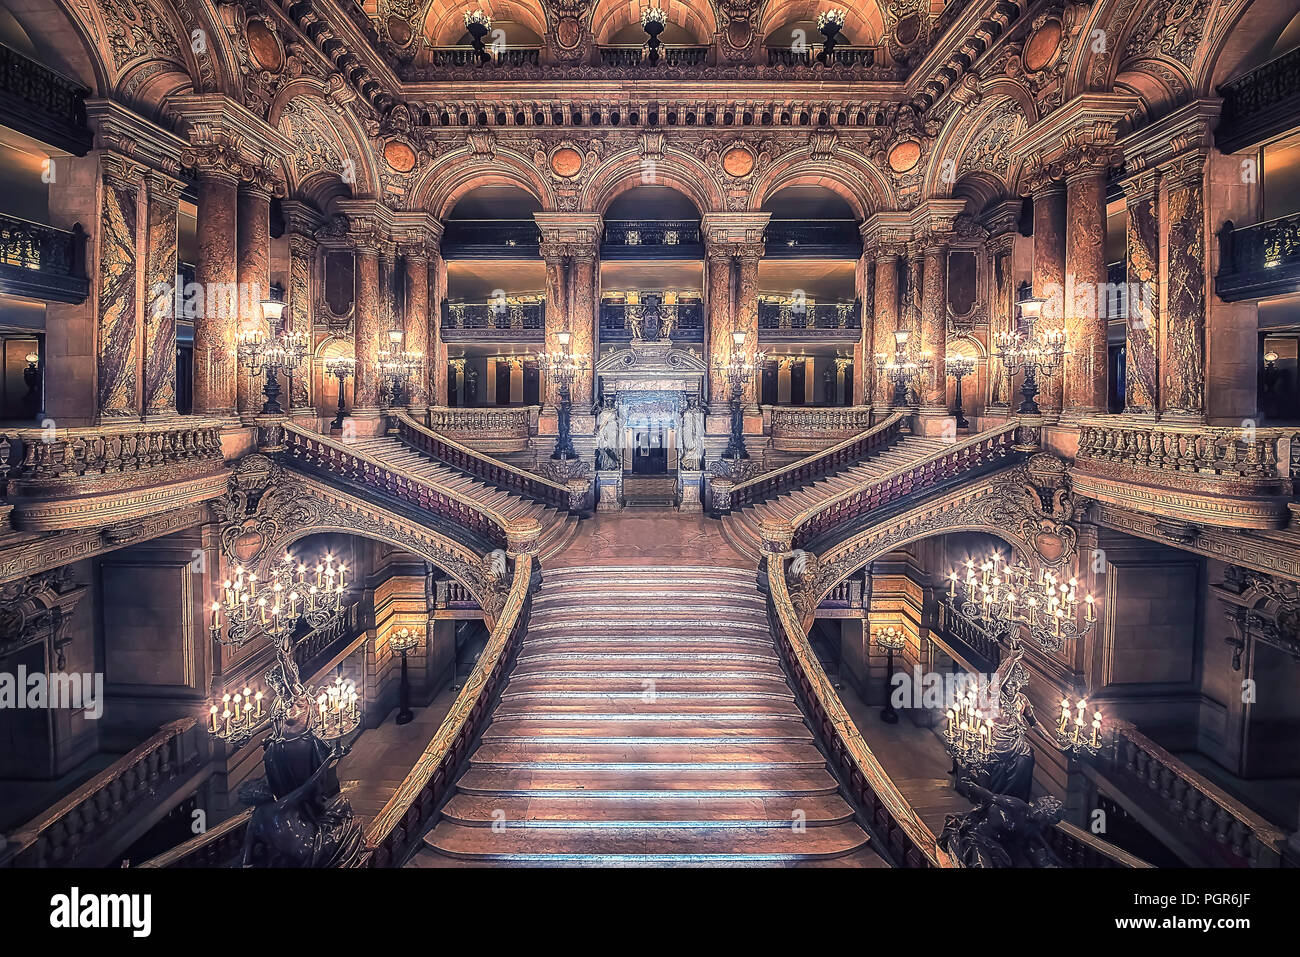 September 2016 Paris France Stairway Of The Opera House In